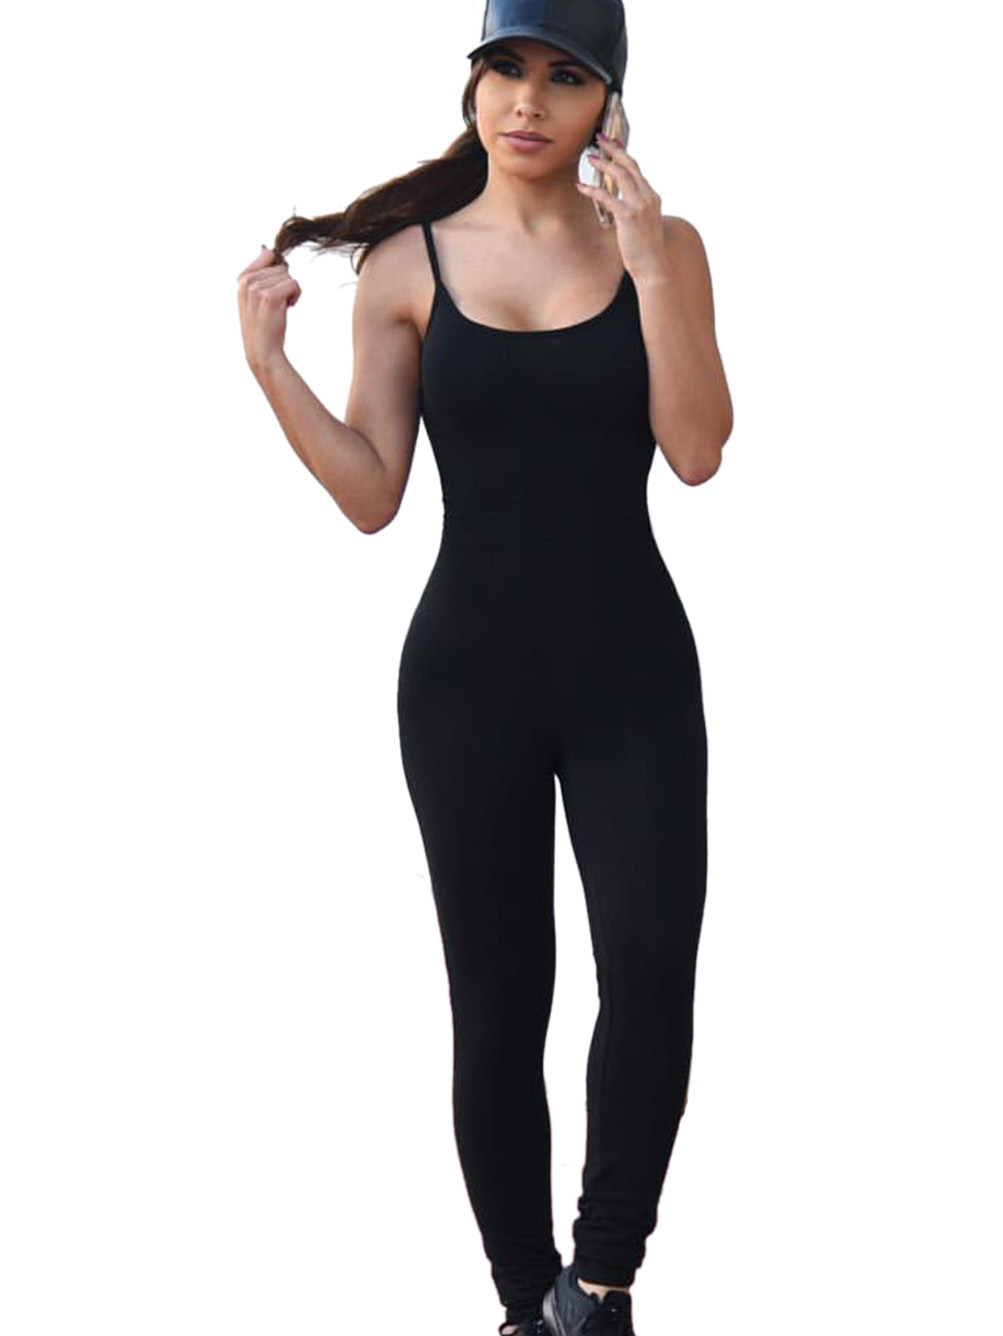 Slim Solid Jumpsuits Black Strapless O-Neck Skinny Long Jumpsuit Casual Bodycon 2016 New Arrival Autumn Sexy Rompers ...